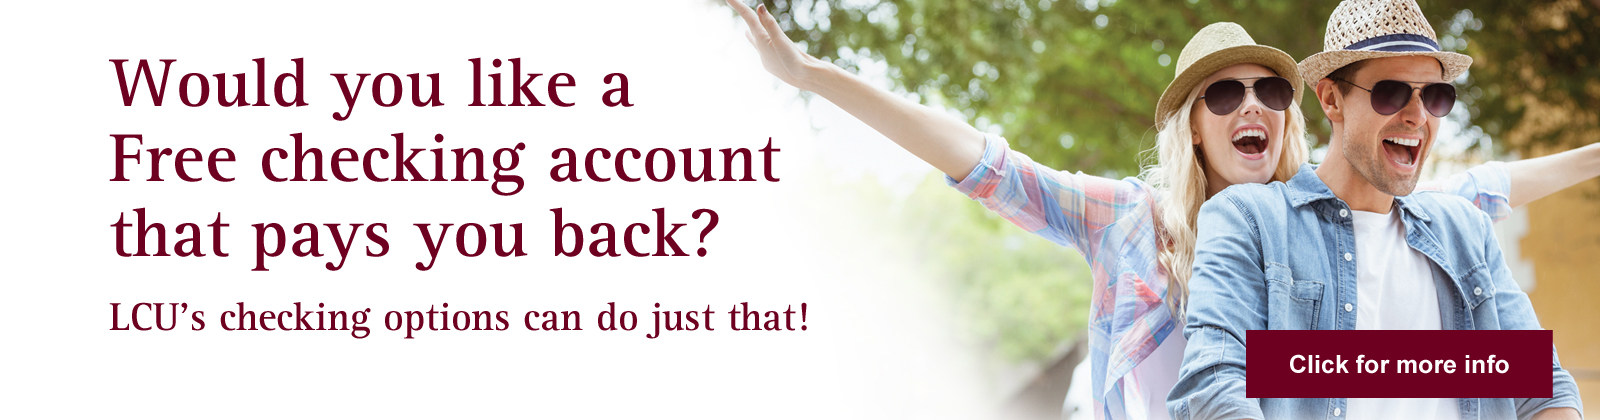 Would you like a free Checking account that pays you back? LCU's Checking options can do just that!